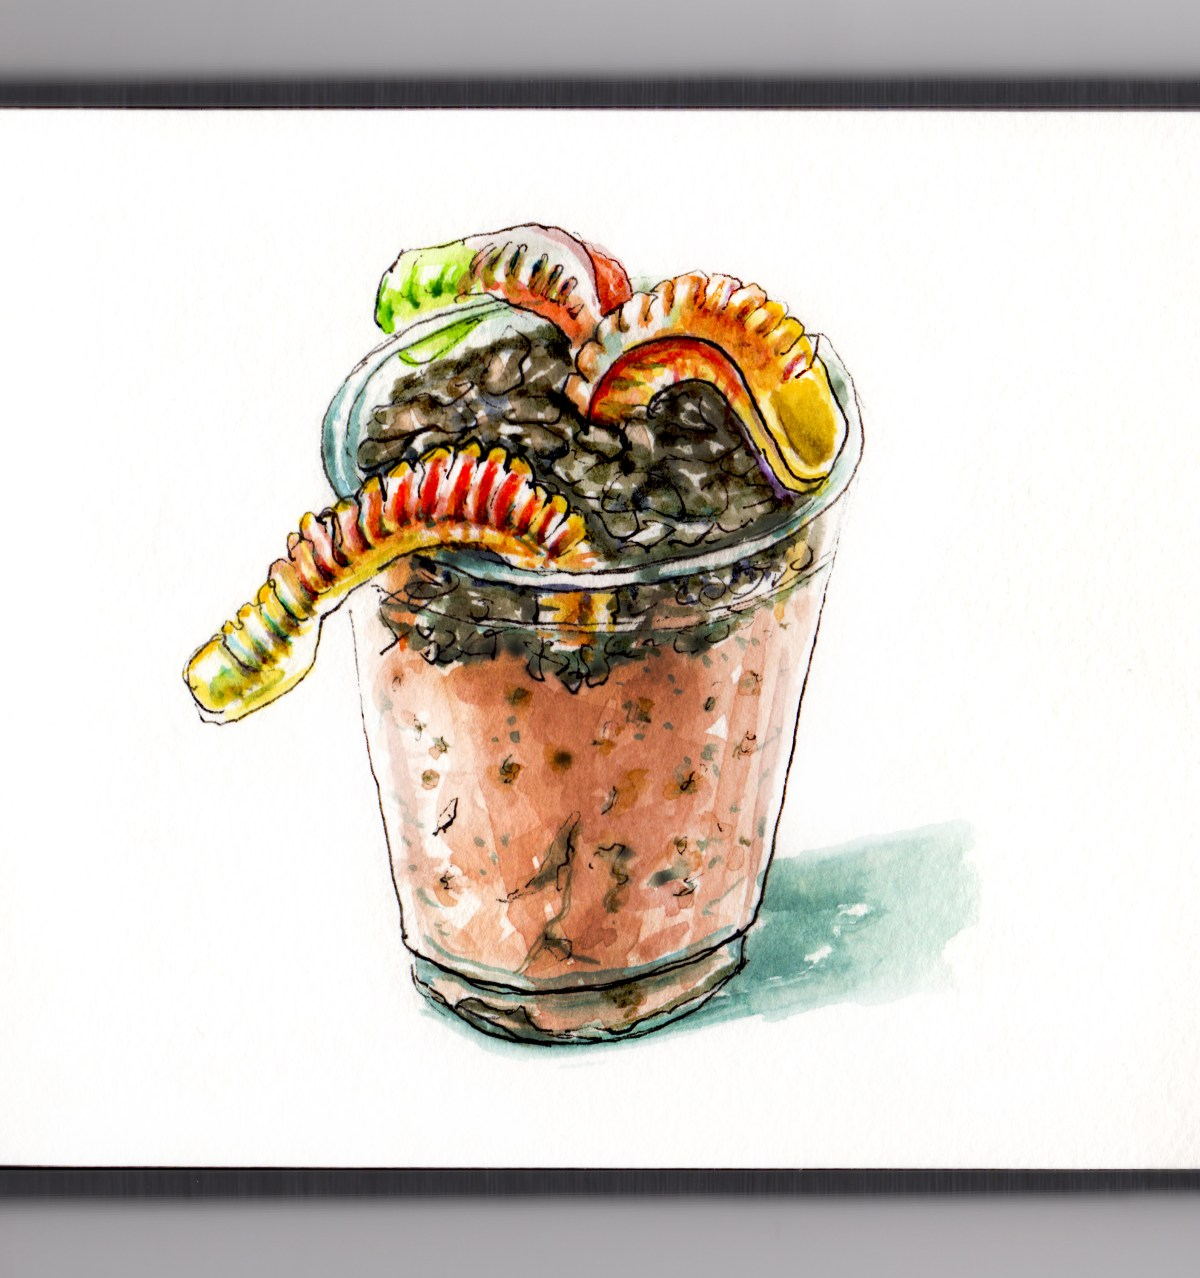 Day 6 - #WorldWatercolorGroup - Eating Dirt And Worms - Dessert Fun Treat for Kids with Oreos pudding and gummi worms - #doodlewash